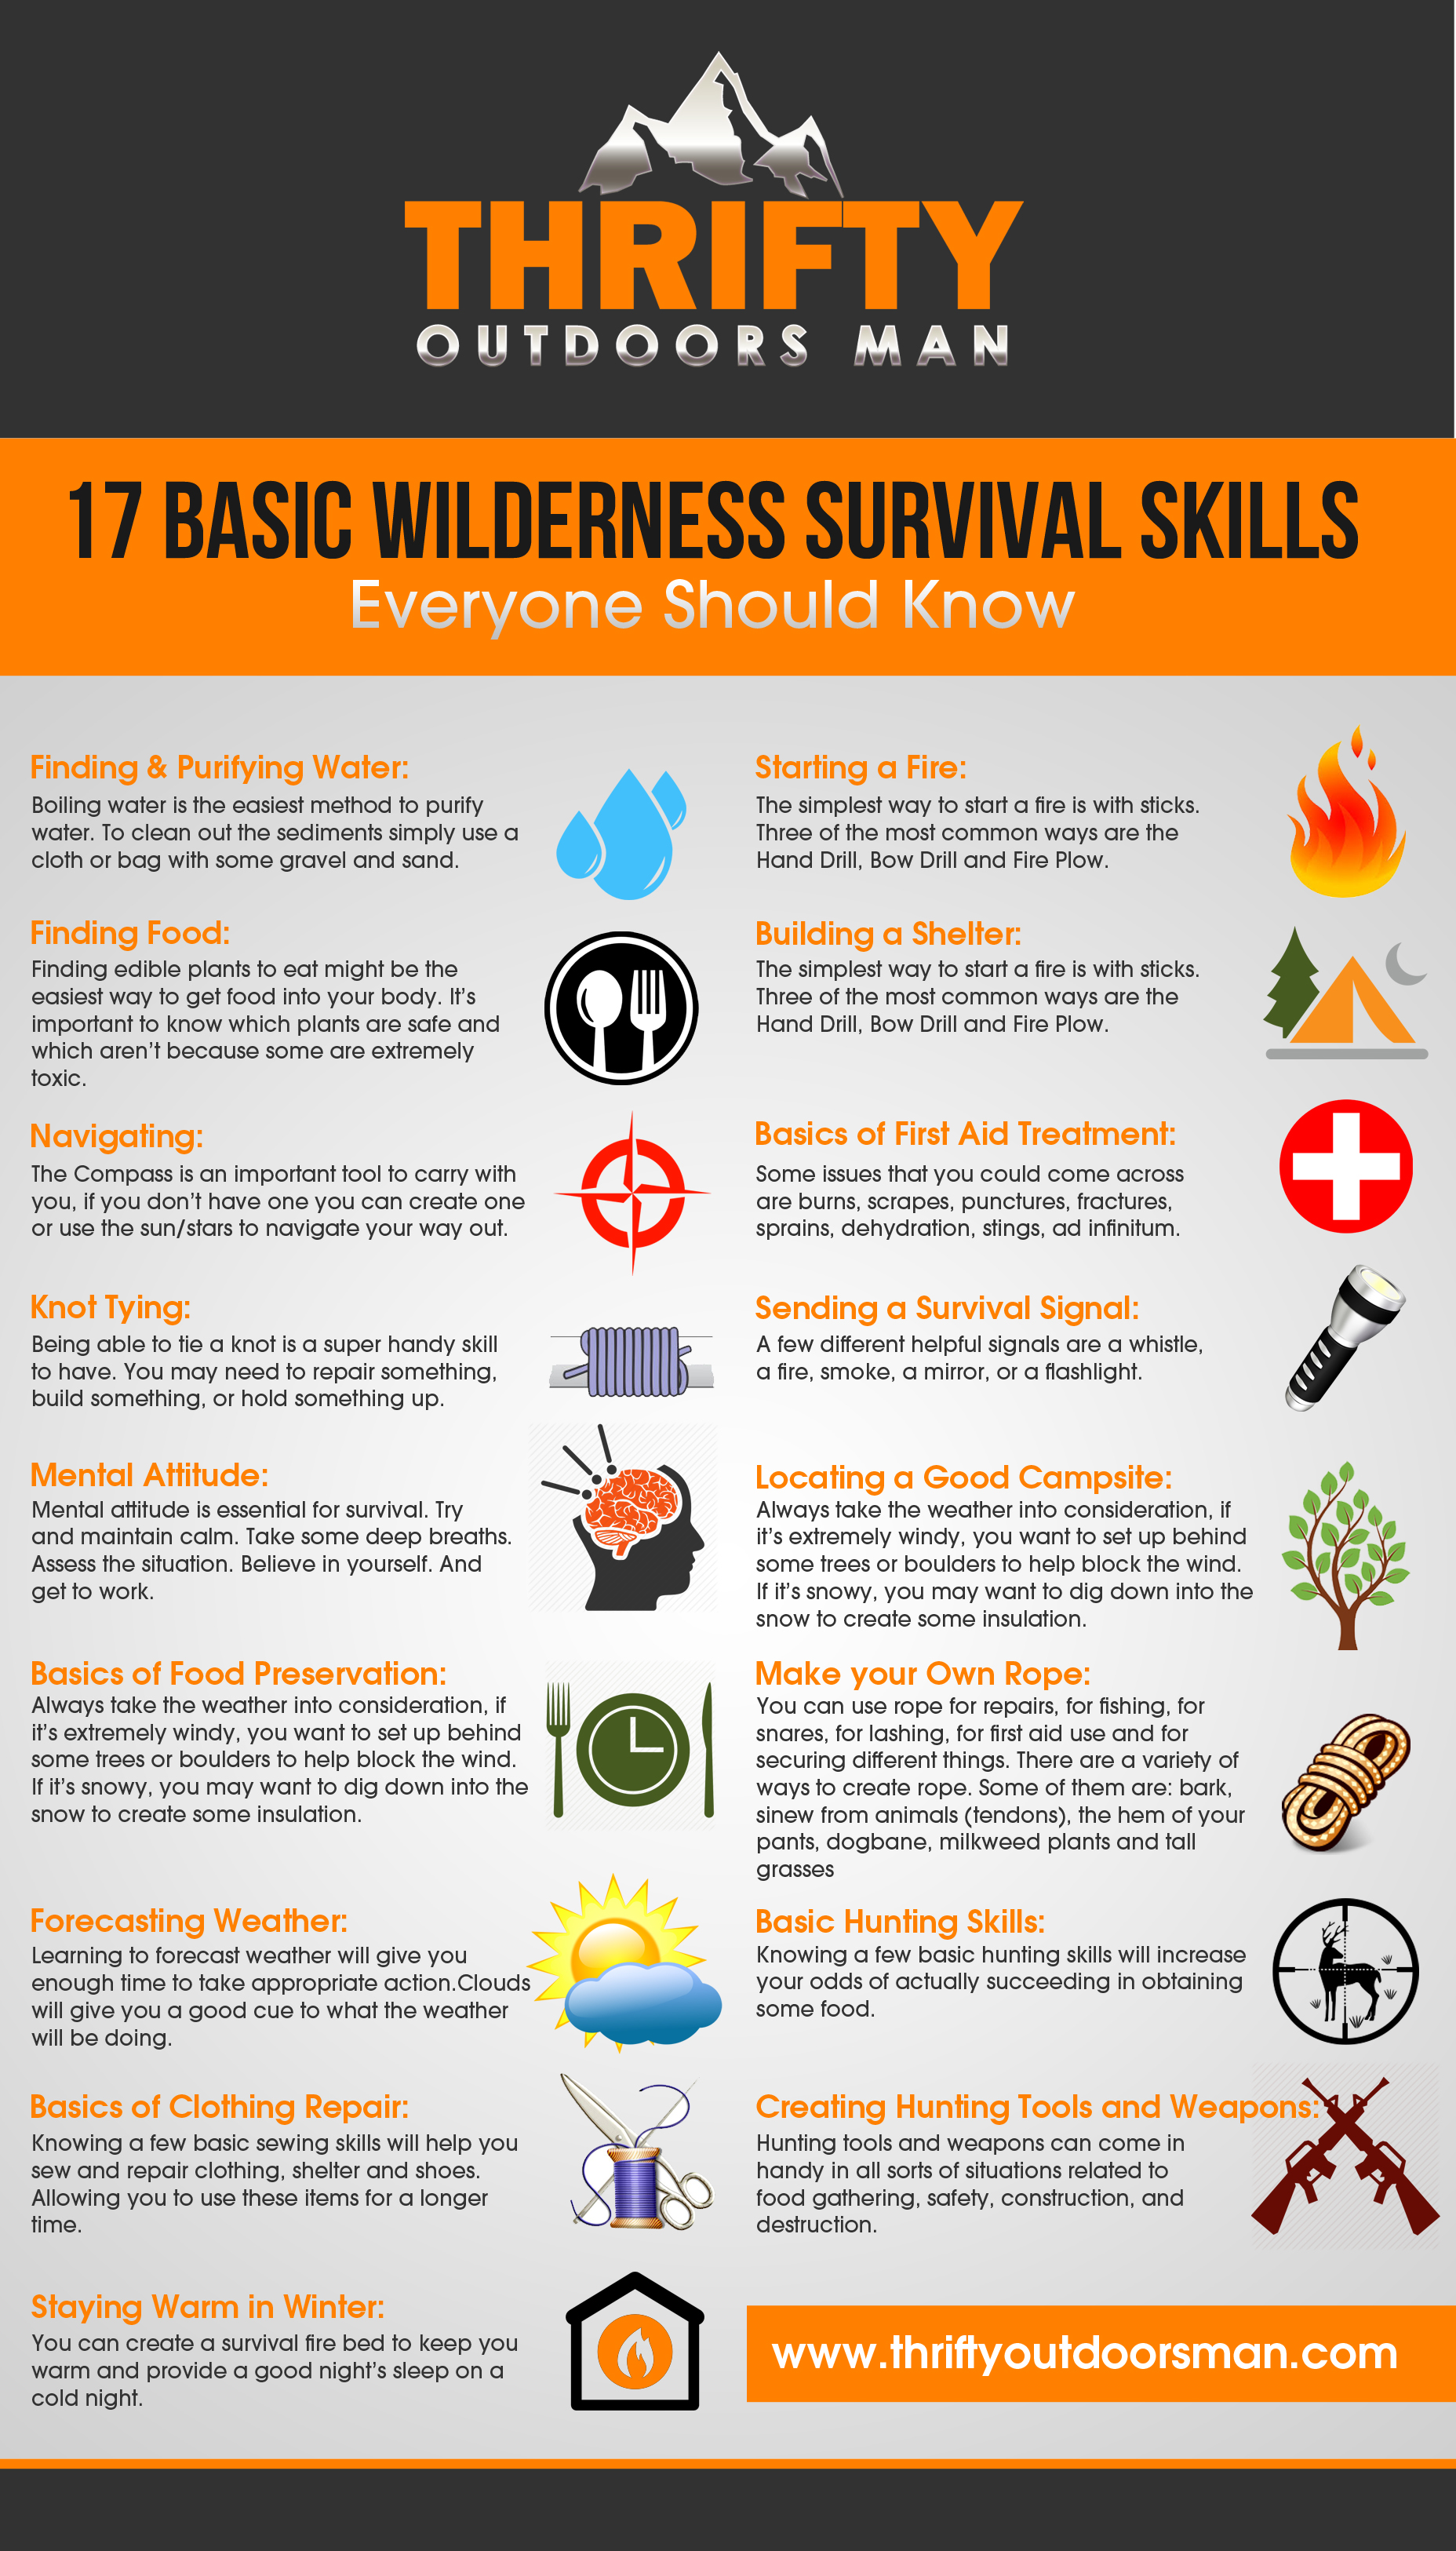 17 Basic Wilderness Survival Skills